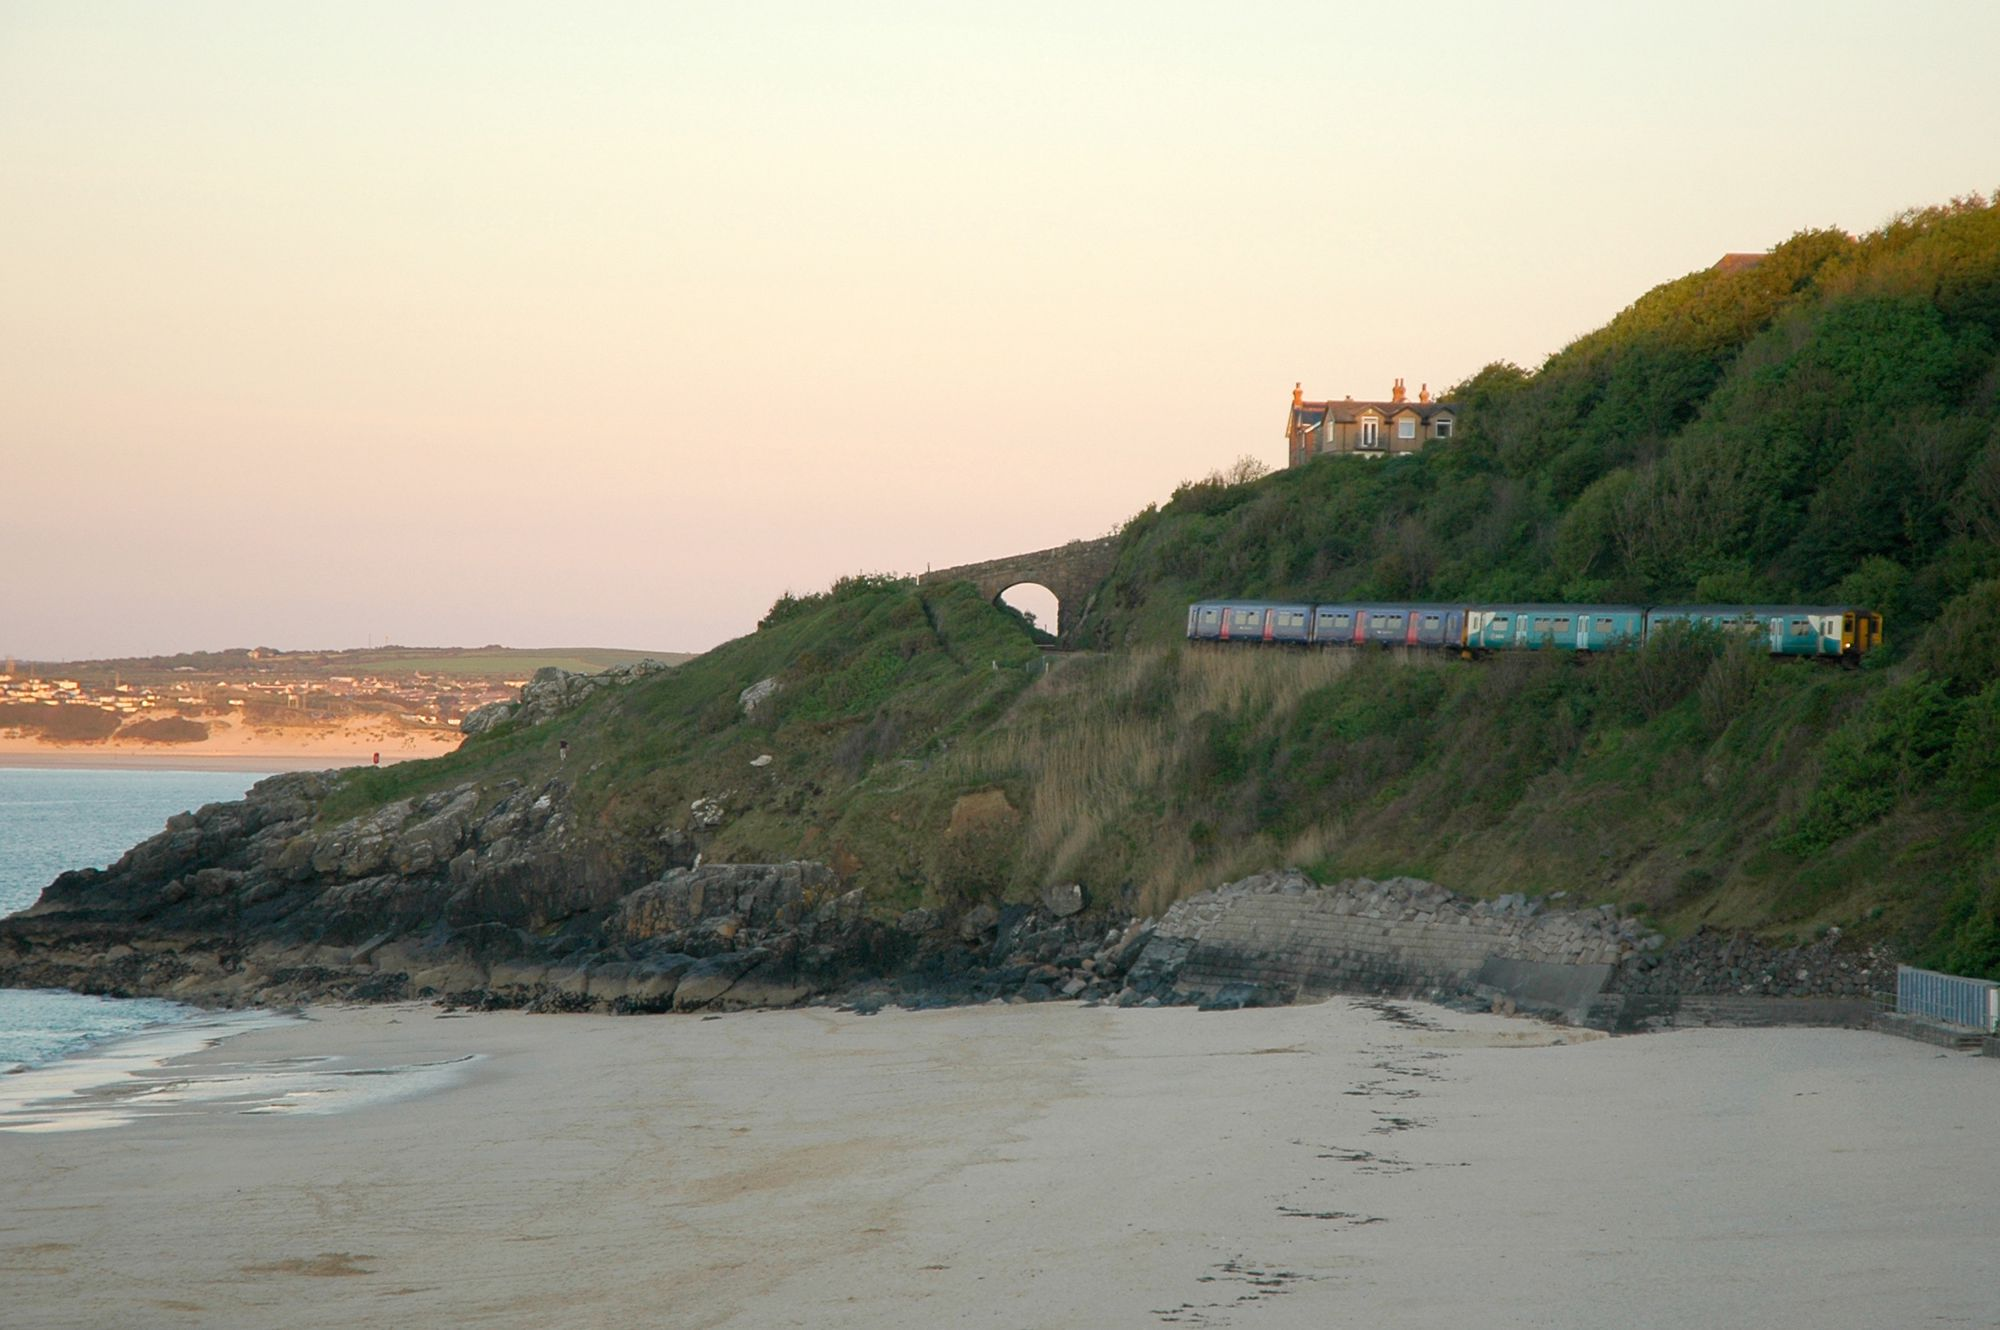 Park and Ride on the St Ives Bay Line